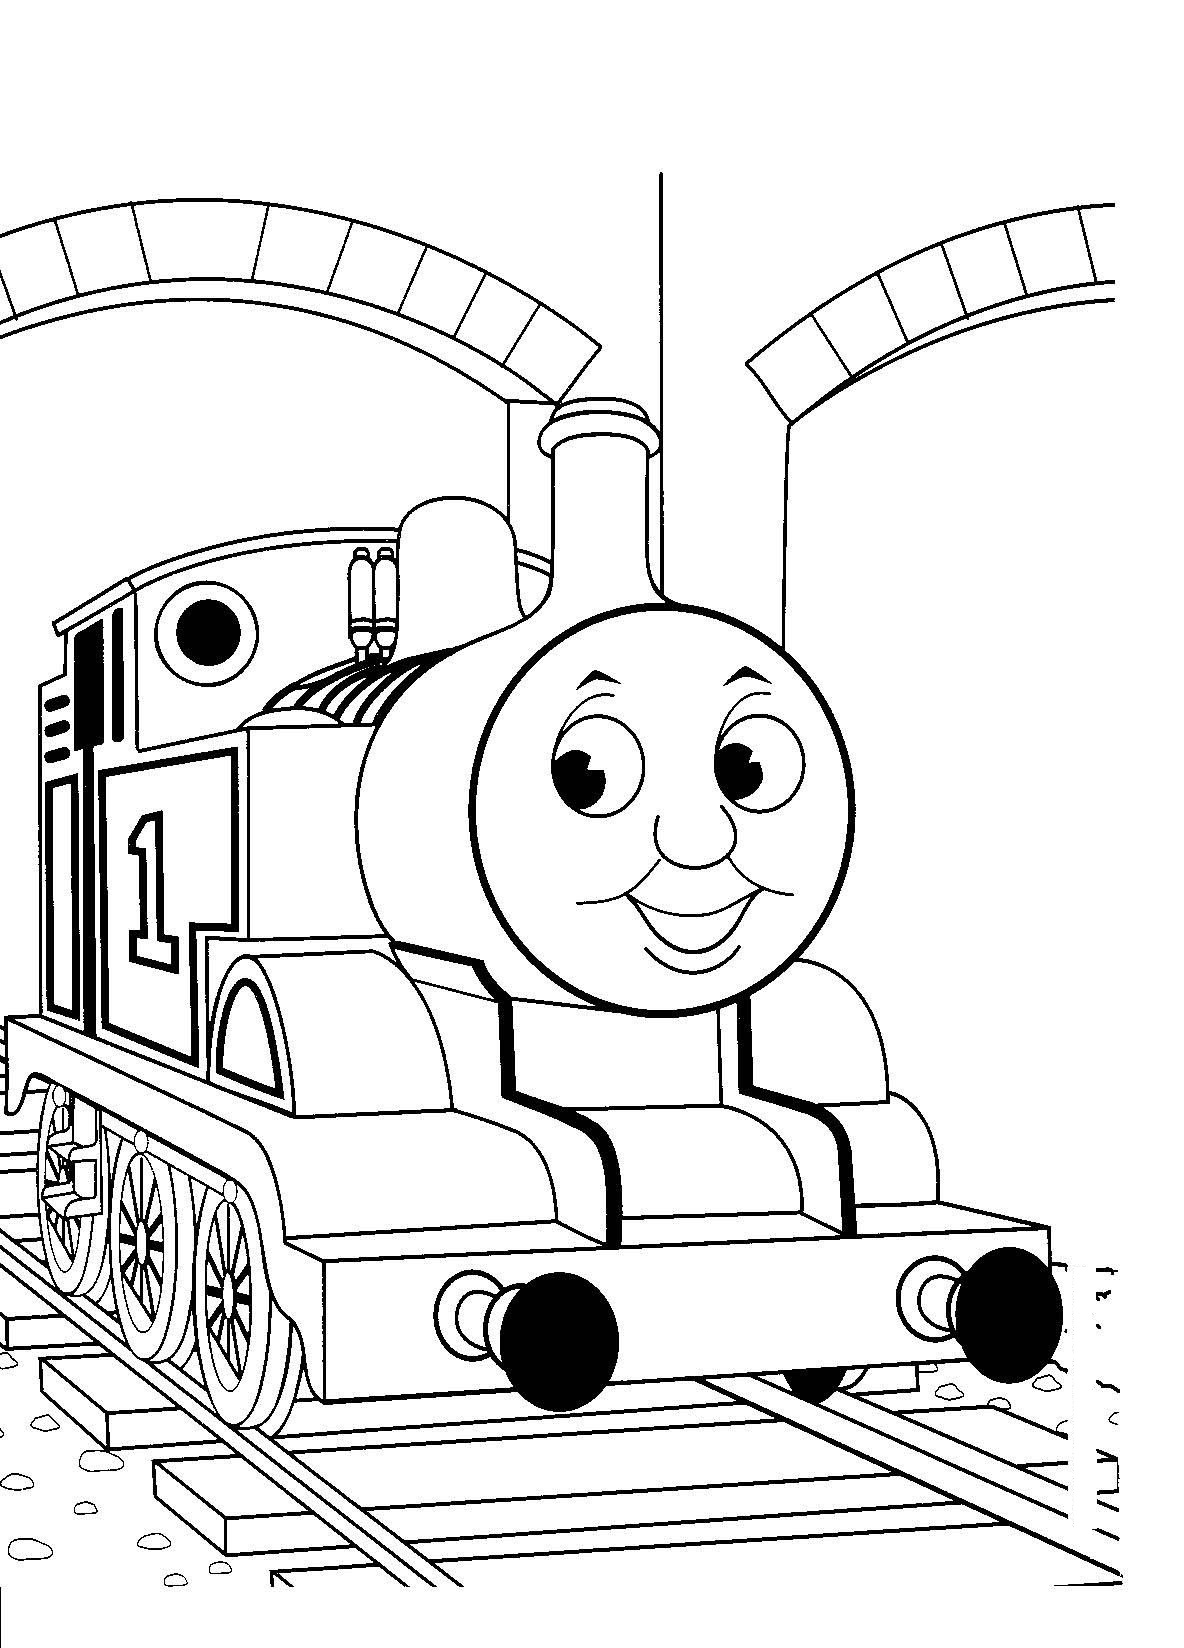 Preschool coloring games online free - Free Printable Thomas The Train Coloring Pages